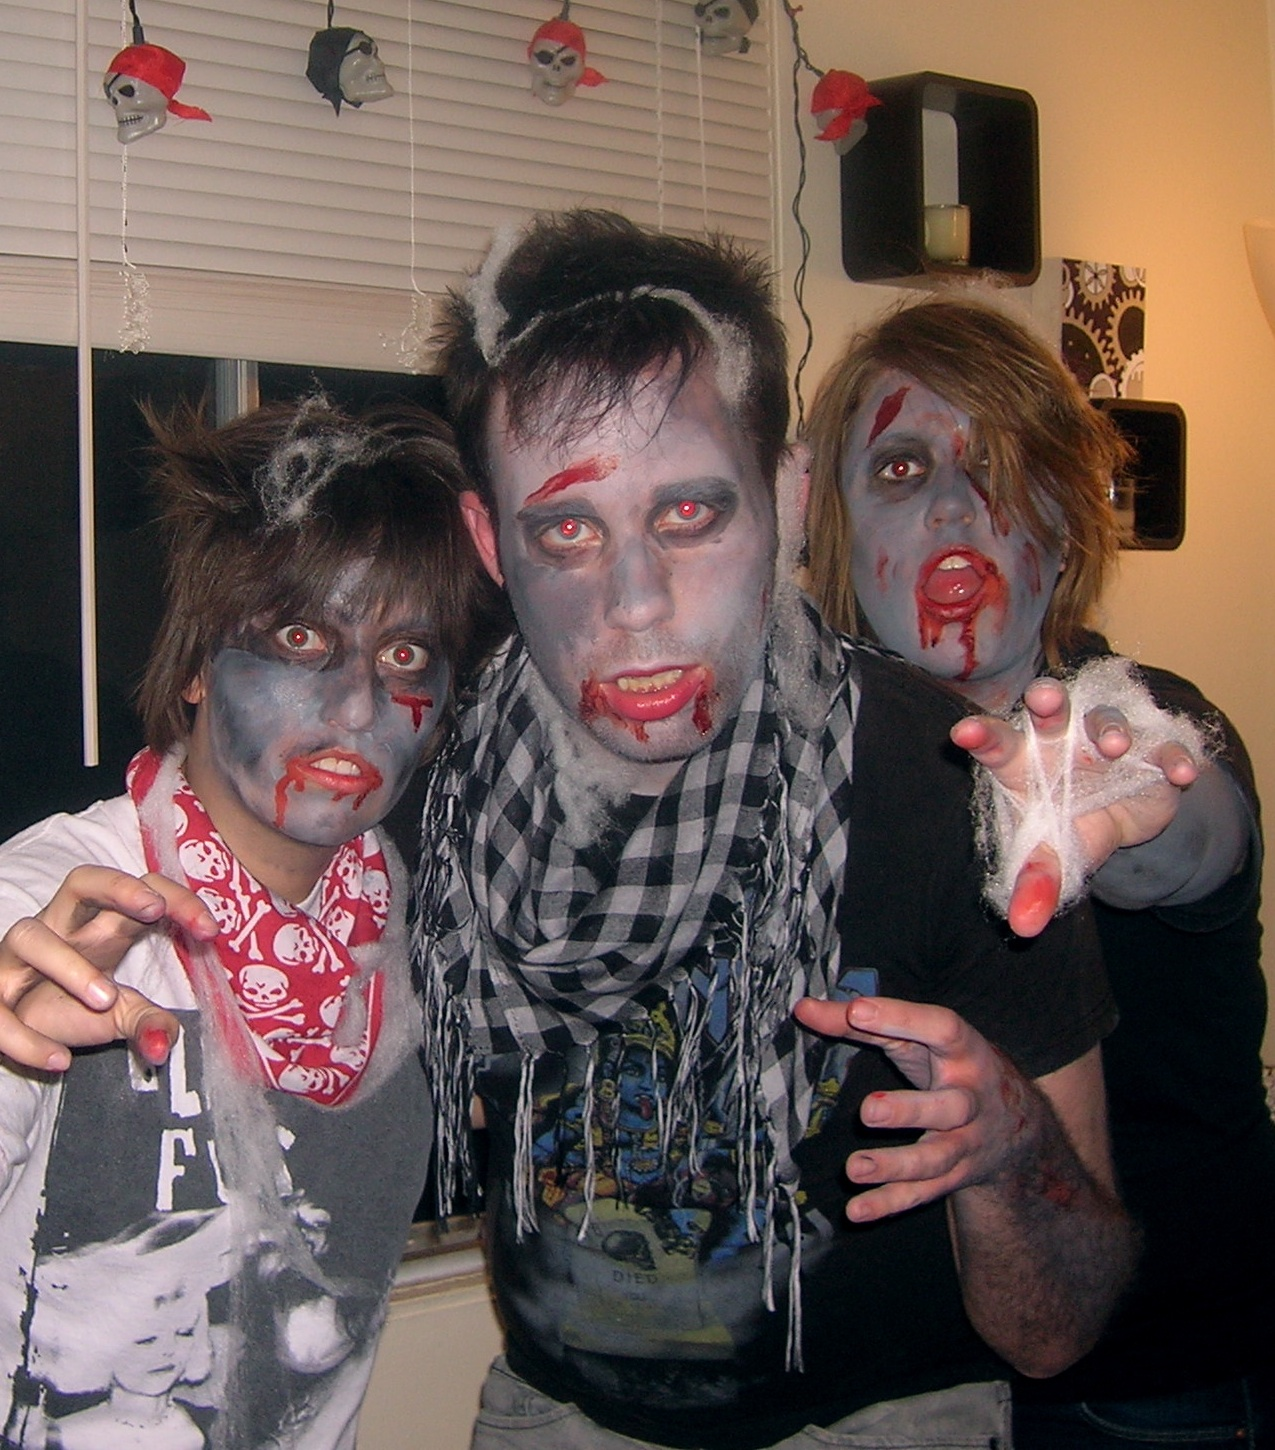 zombiehipsters